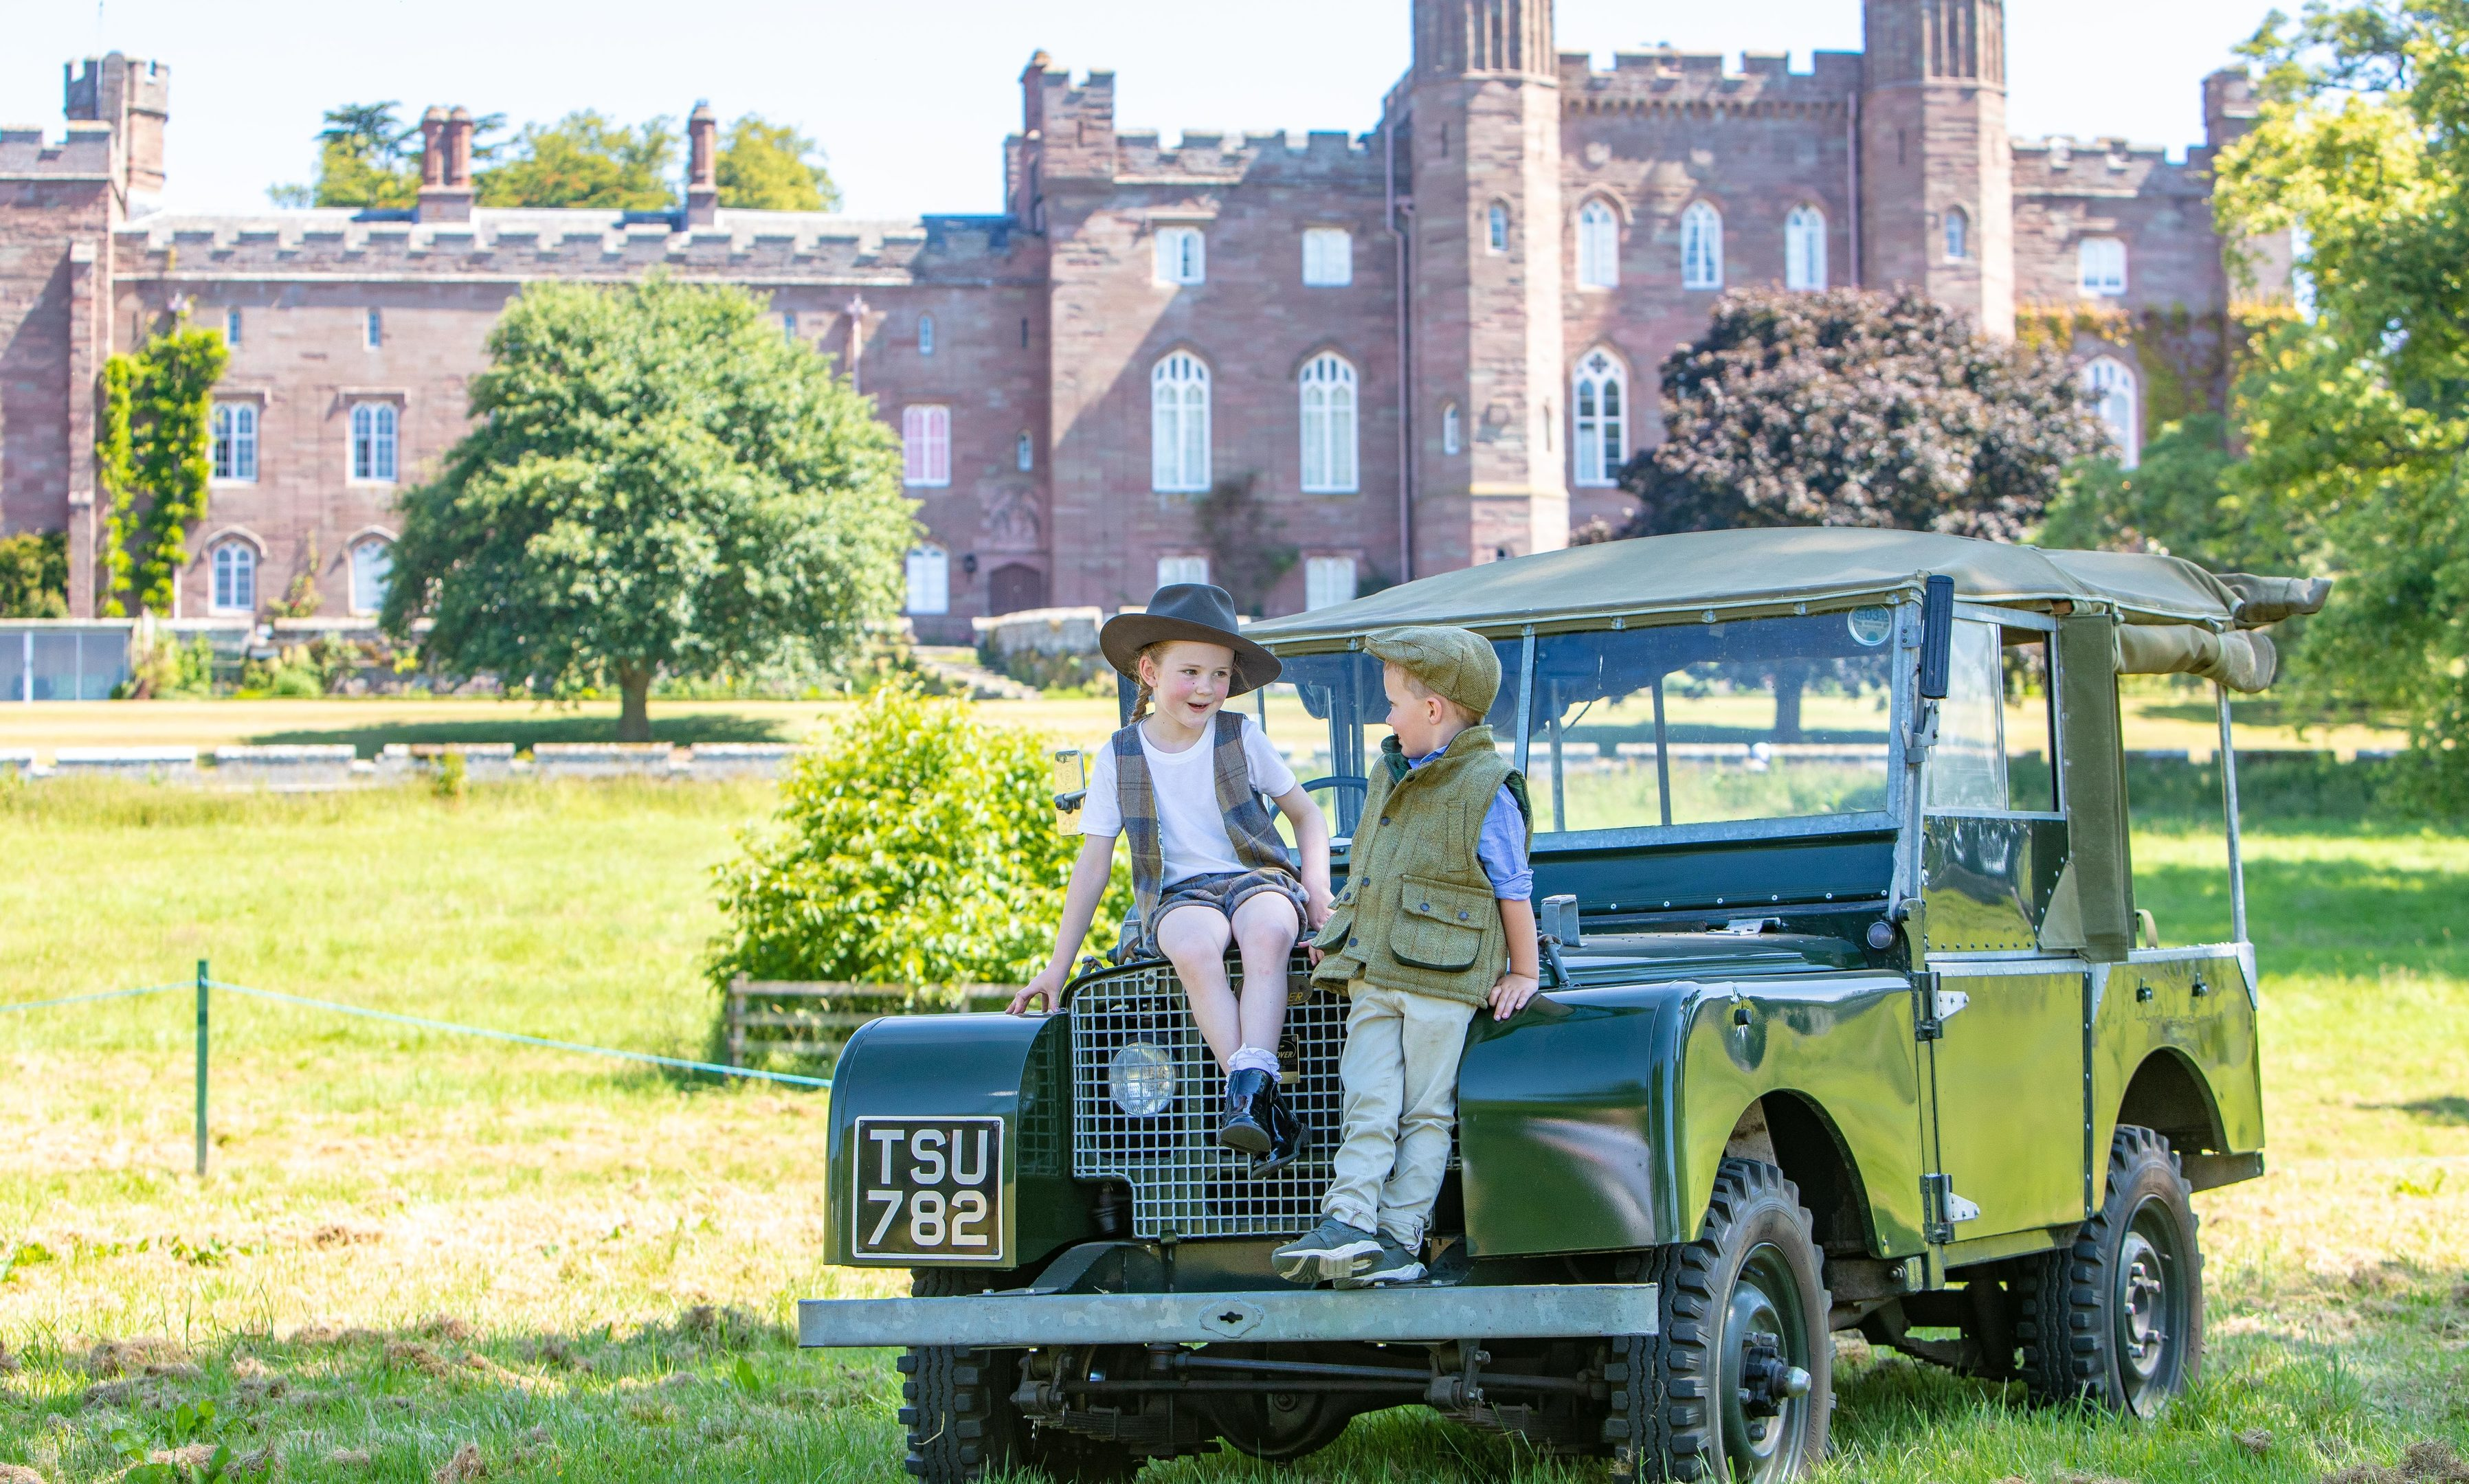 Isabella McGregor (5) and Cody Kerr (5) on a vintage Land Rover, in the grounds of Scone Palace.